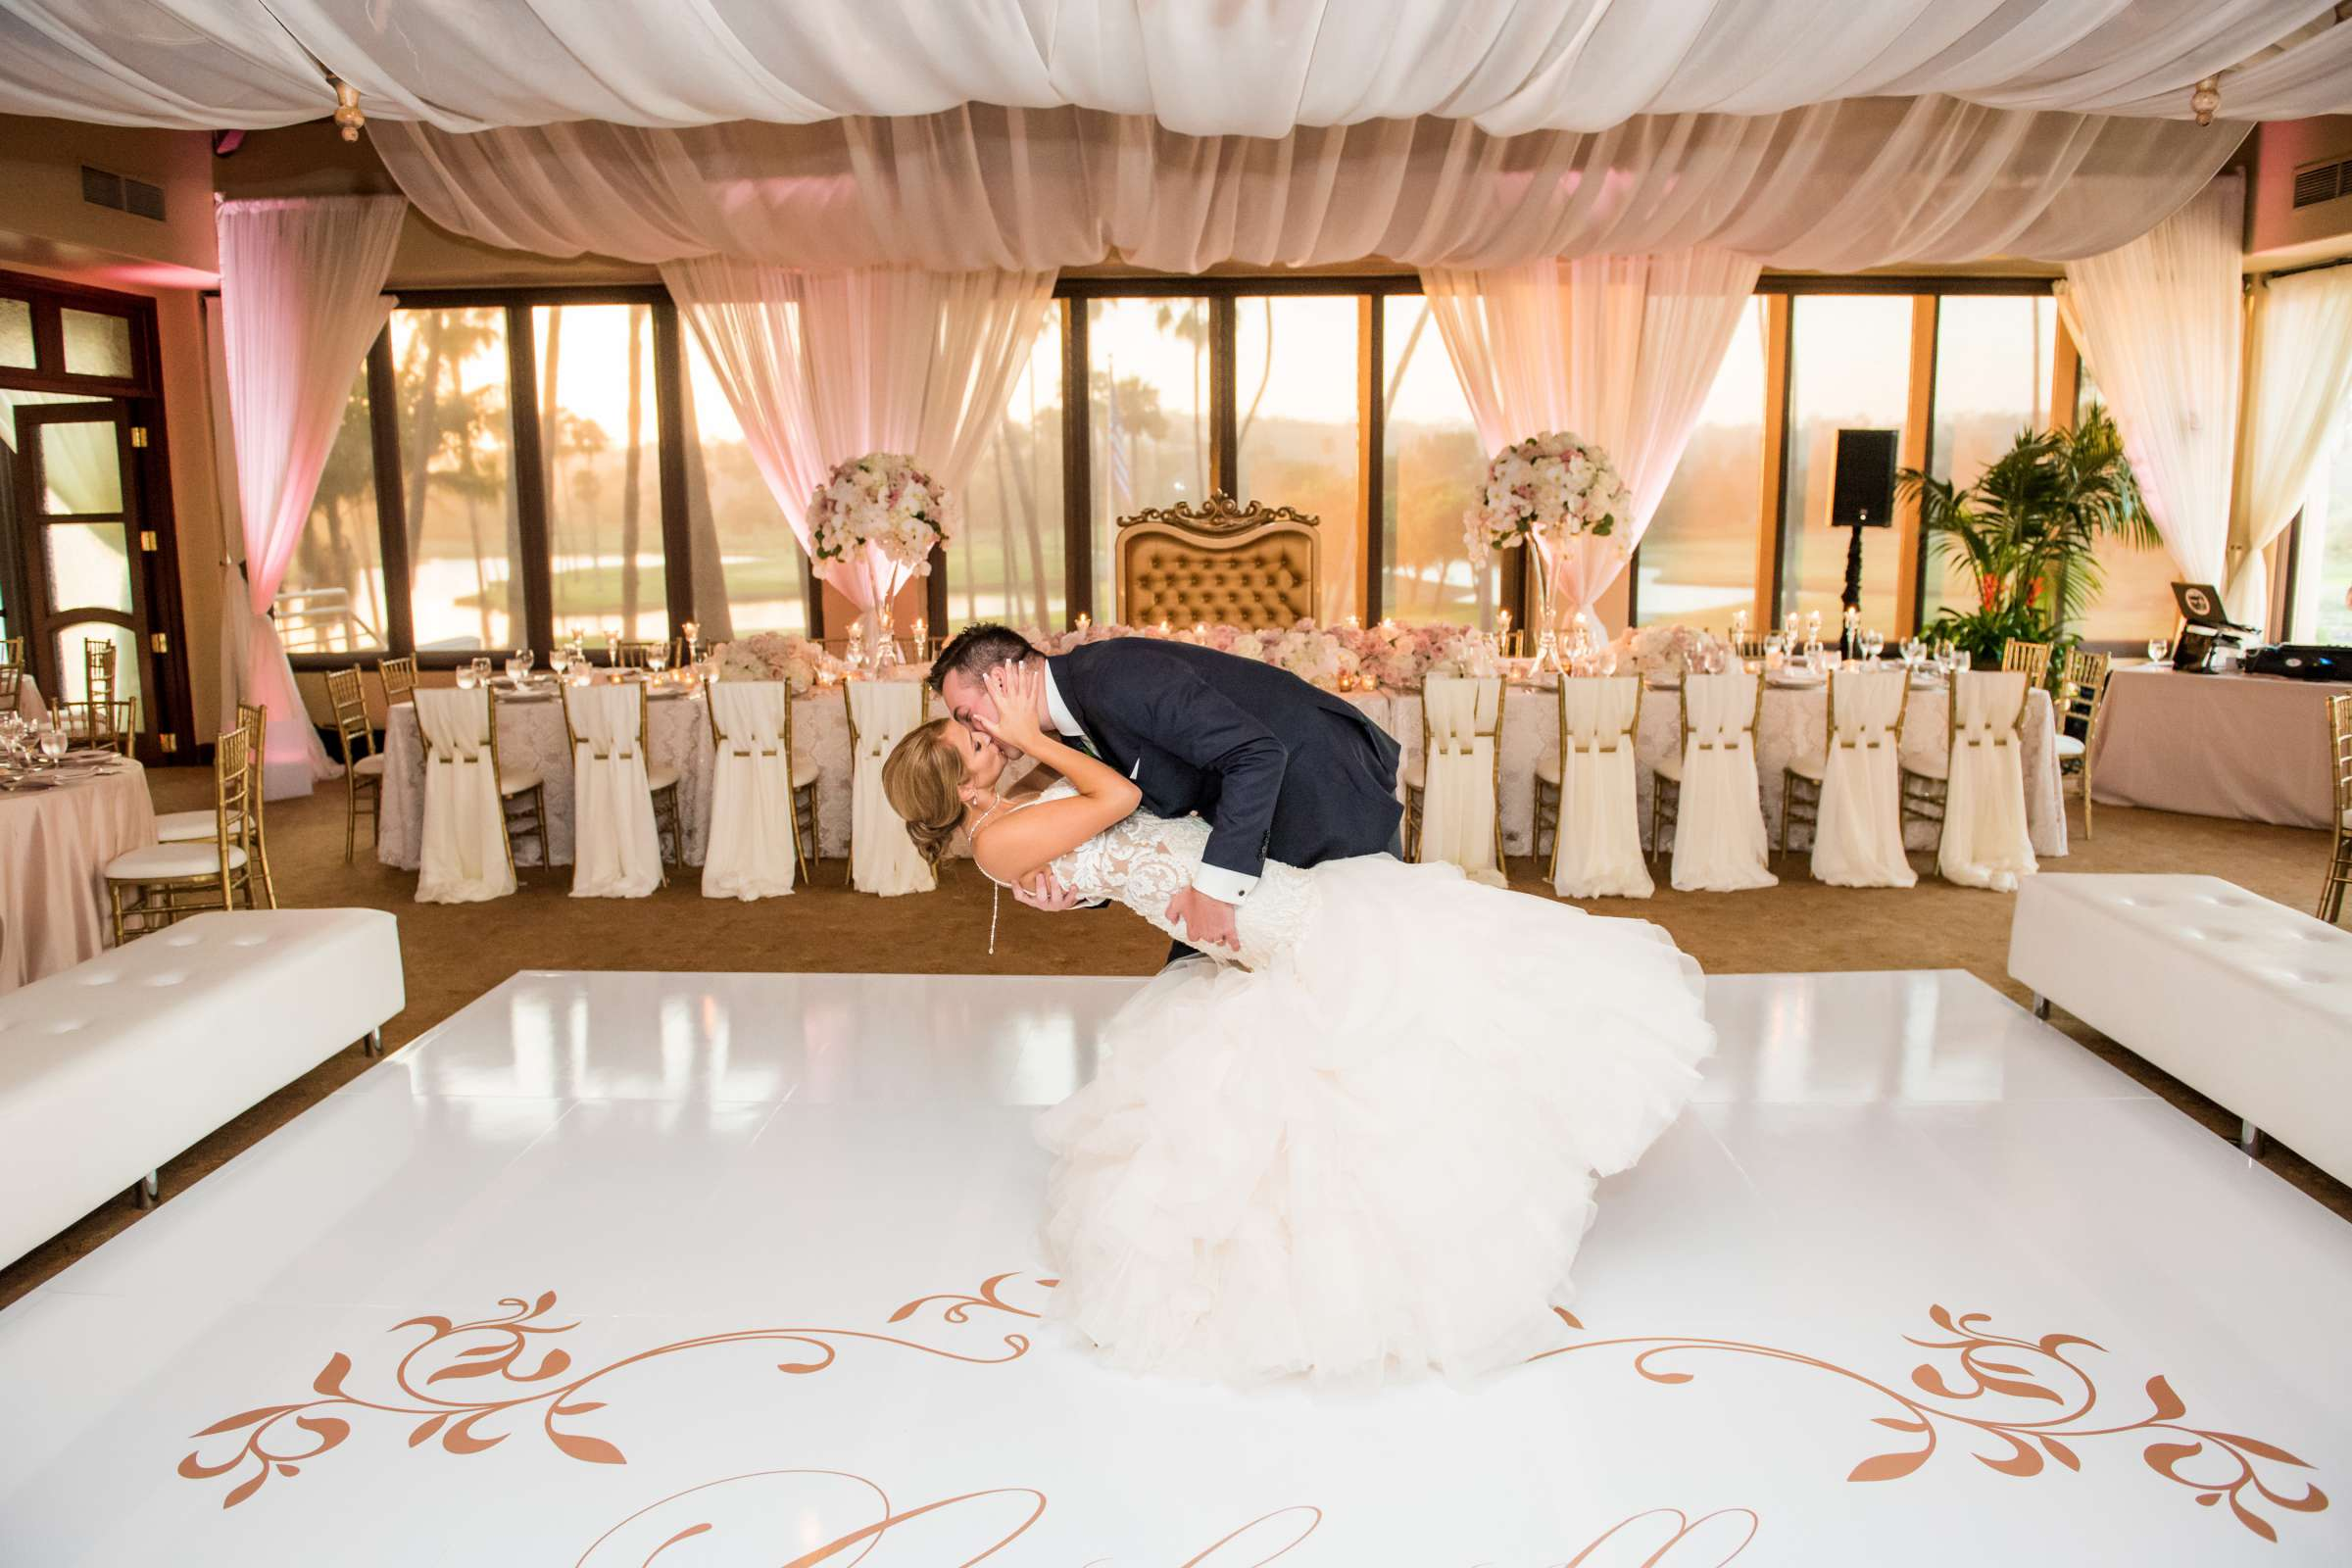 Fairbanks Ranch Country Club Wedding coordinated by Monarch Weddings, Gabriella and Kyle Wedding Photo #126 by True Photography